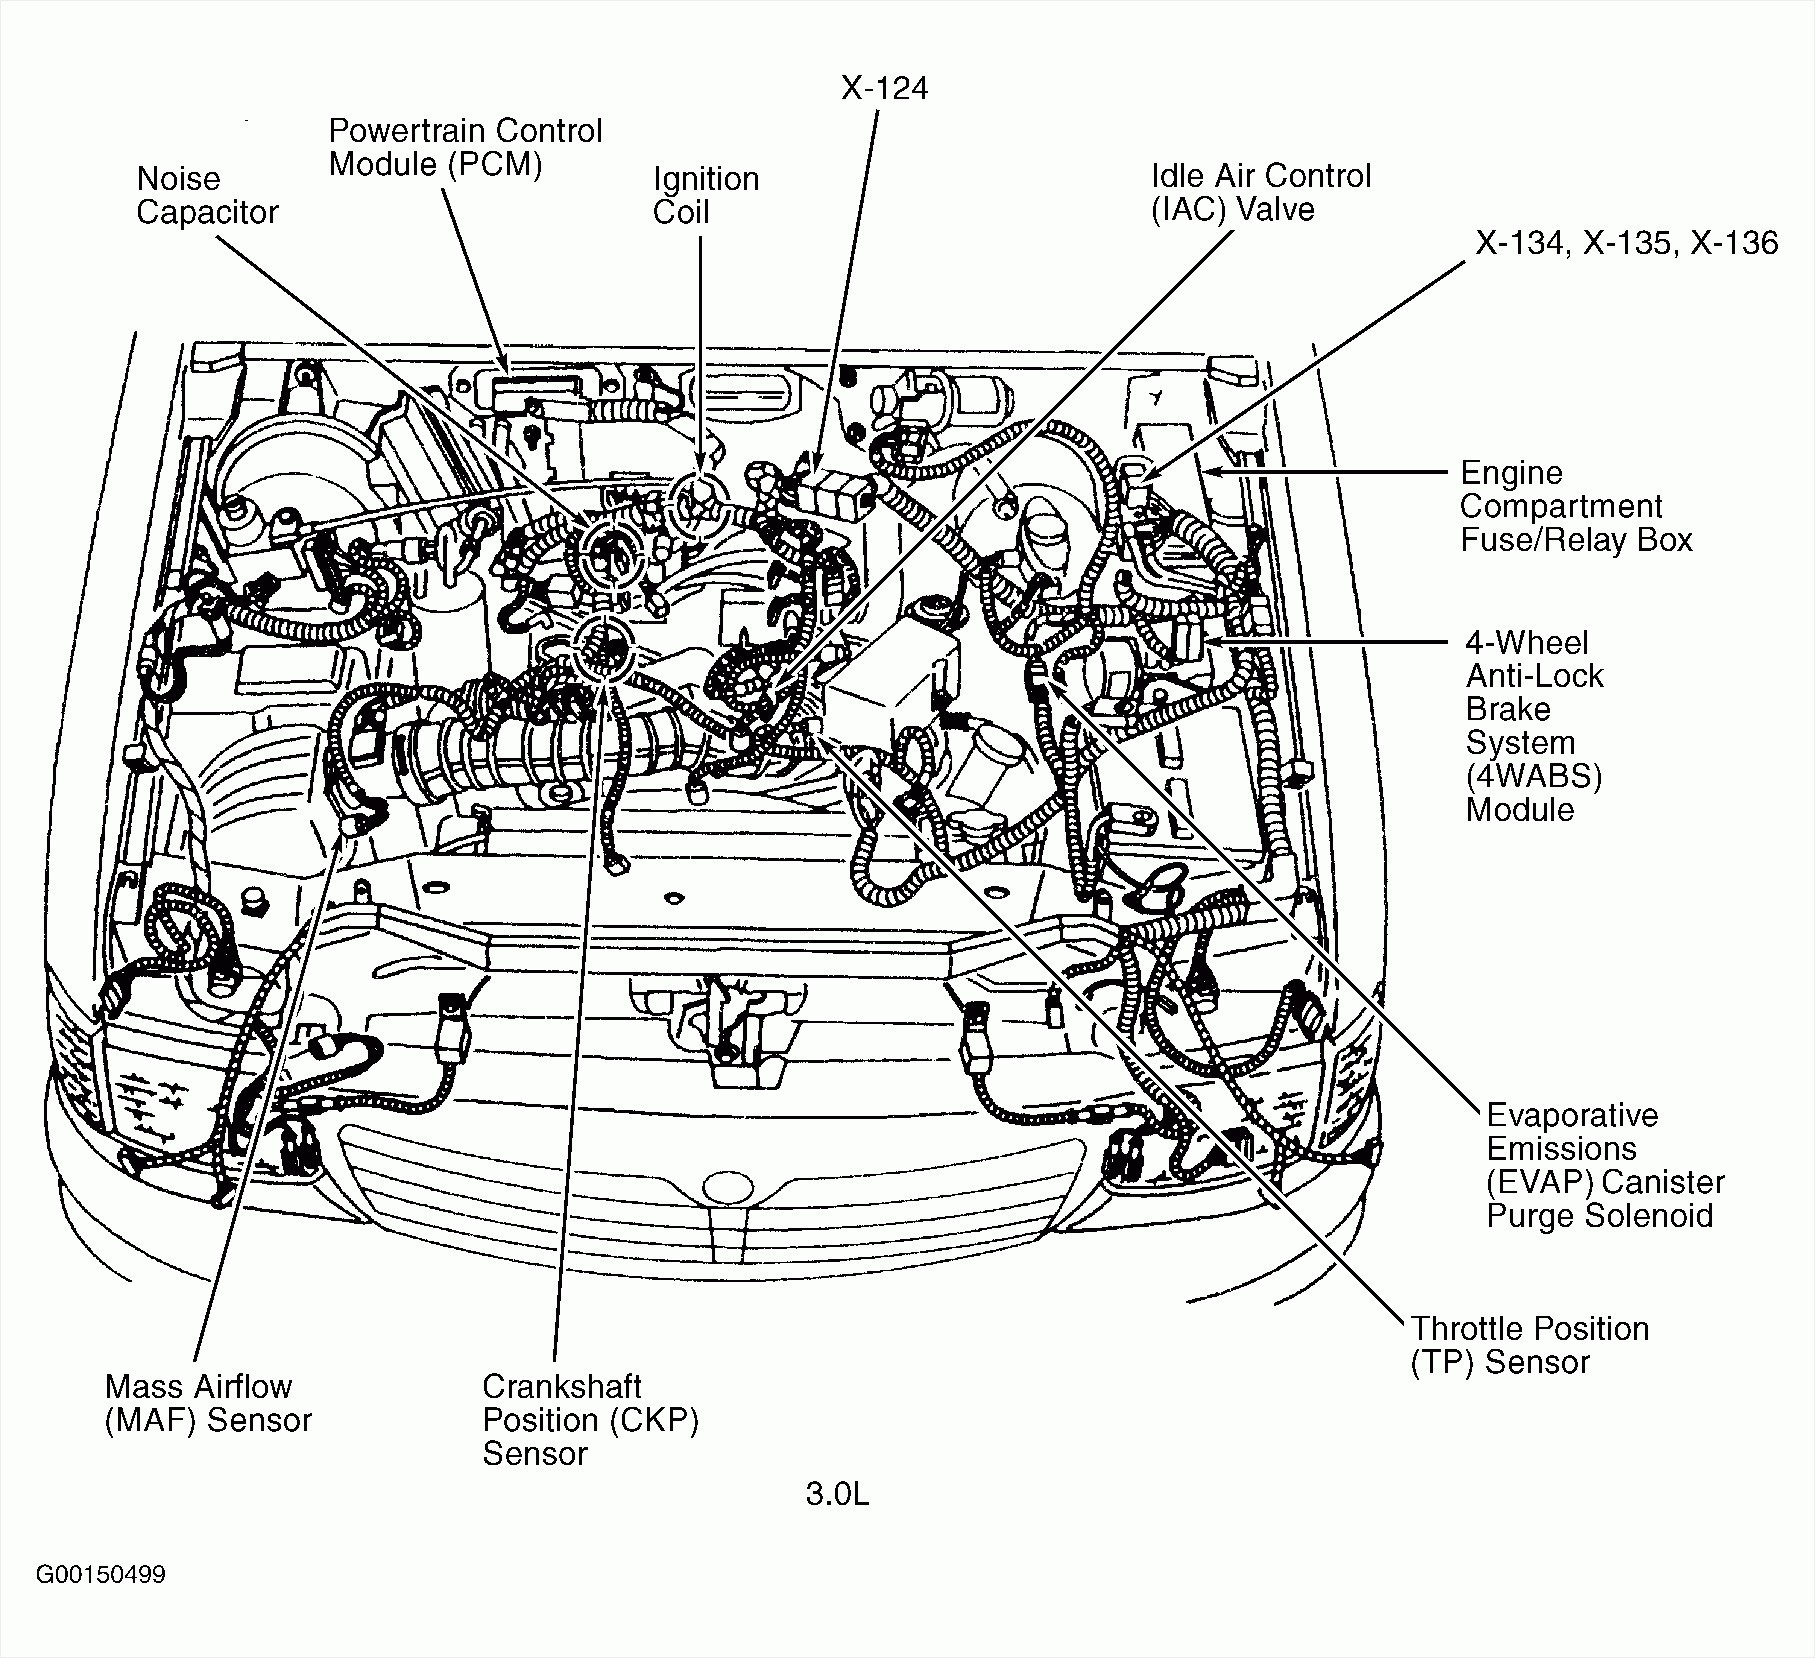 hight resolution of vacuum diagram in addition 2004 dodge stratus coolant system diagram diagram further 2003 dodge stratus engine diagram besides 1995 dodge